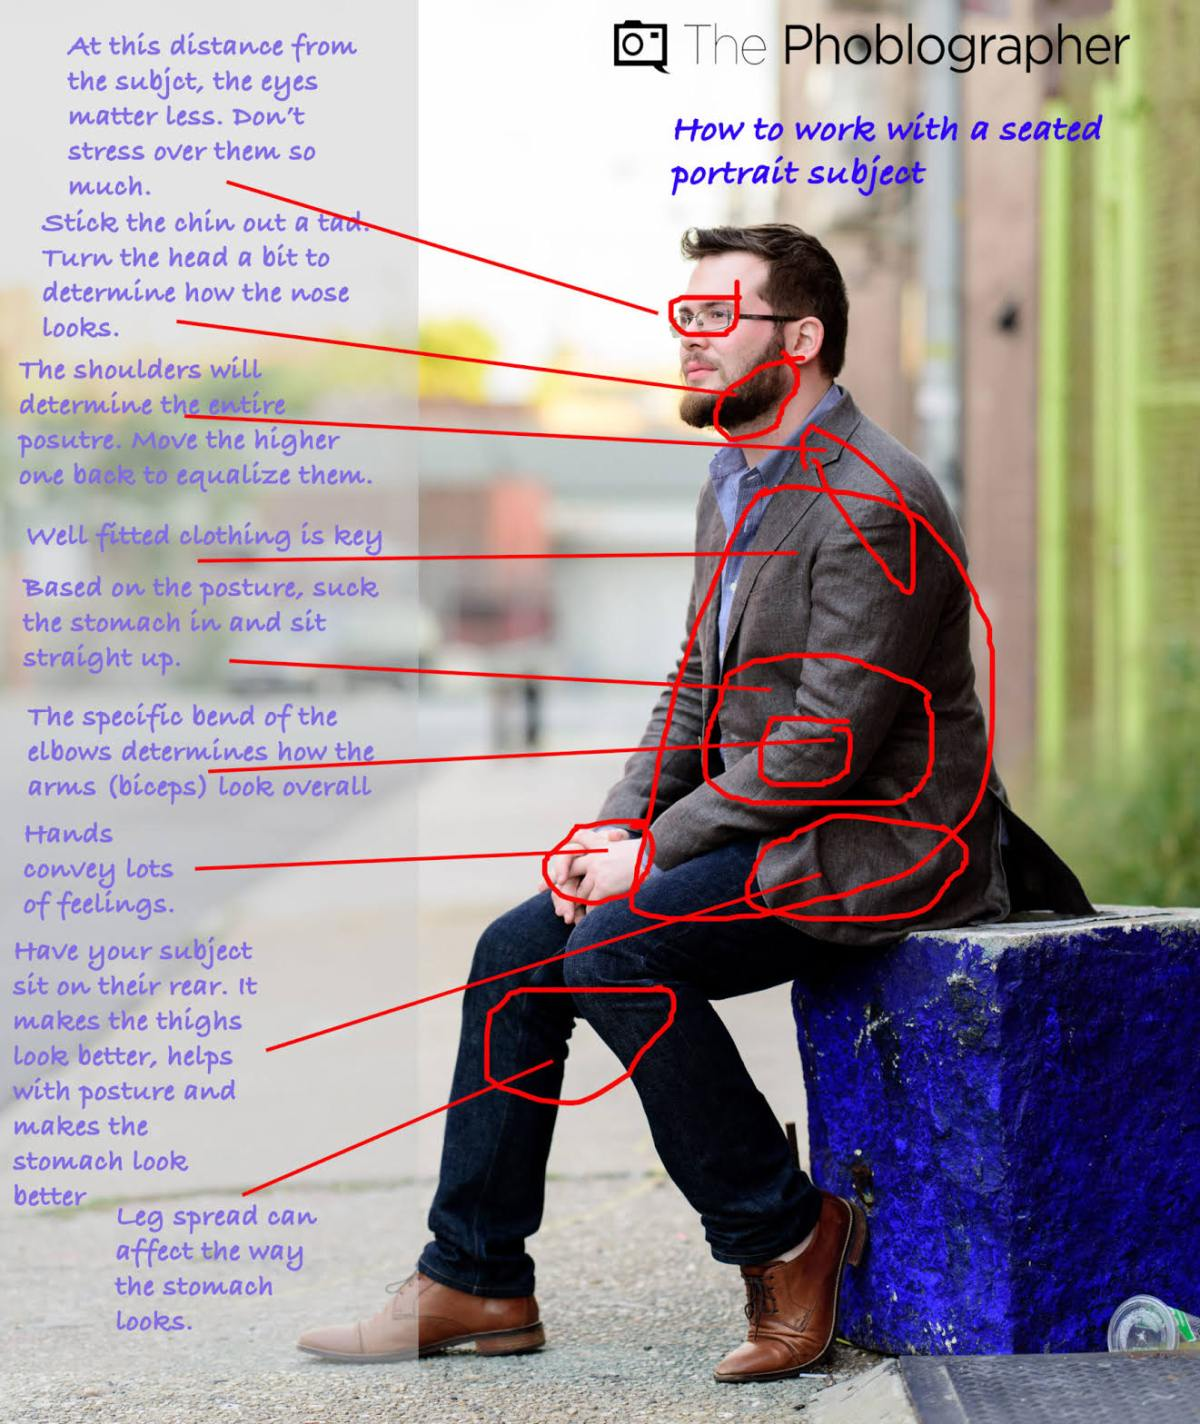 Infographic-Chris-Gampat-The-Phoblographer-Sitting-Portrait-Infographic-1-of-1ISO-4001-250-sec-at-f-2.2.jpg